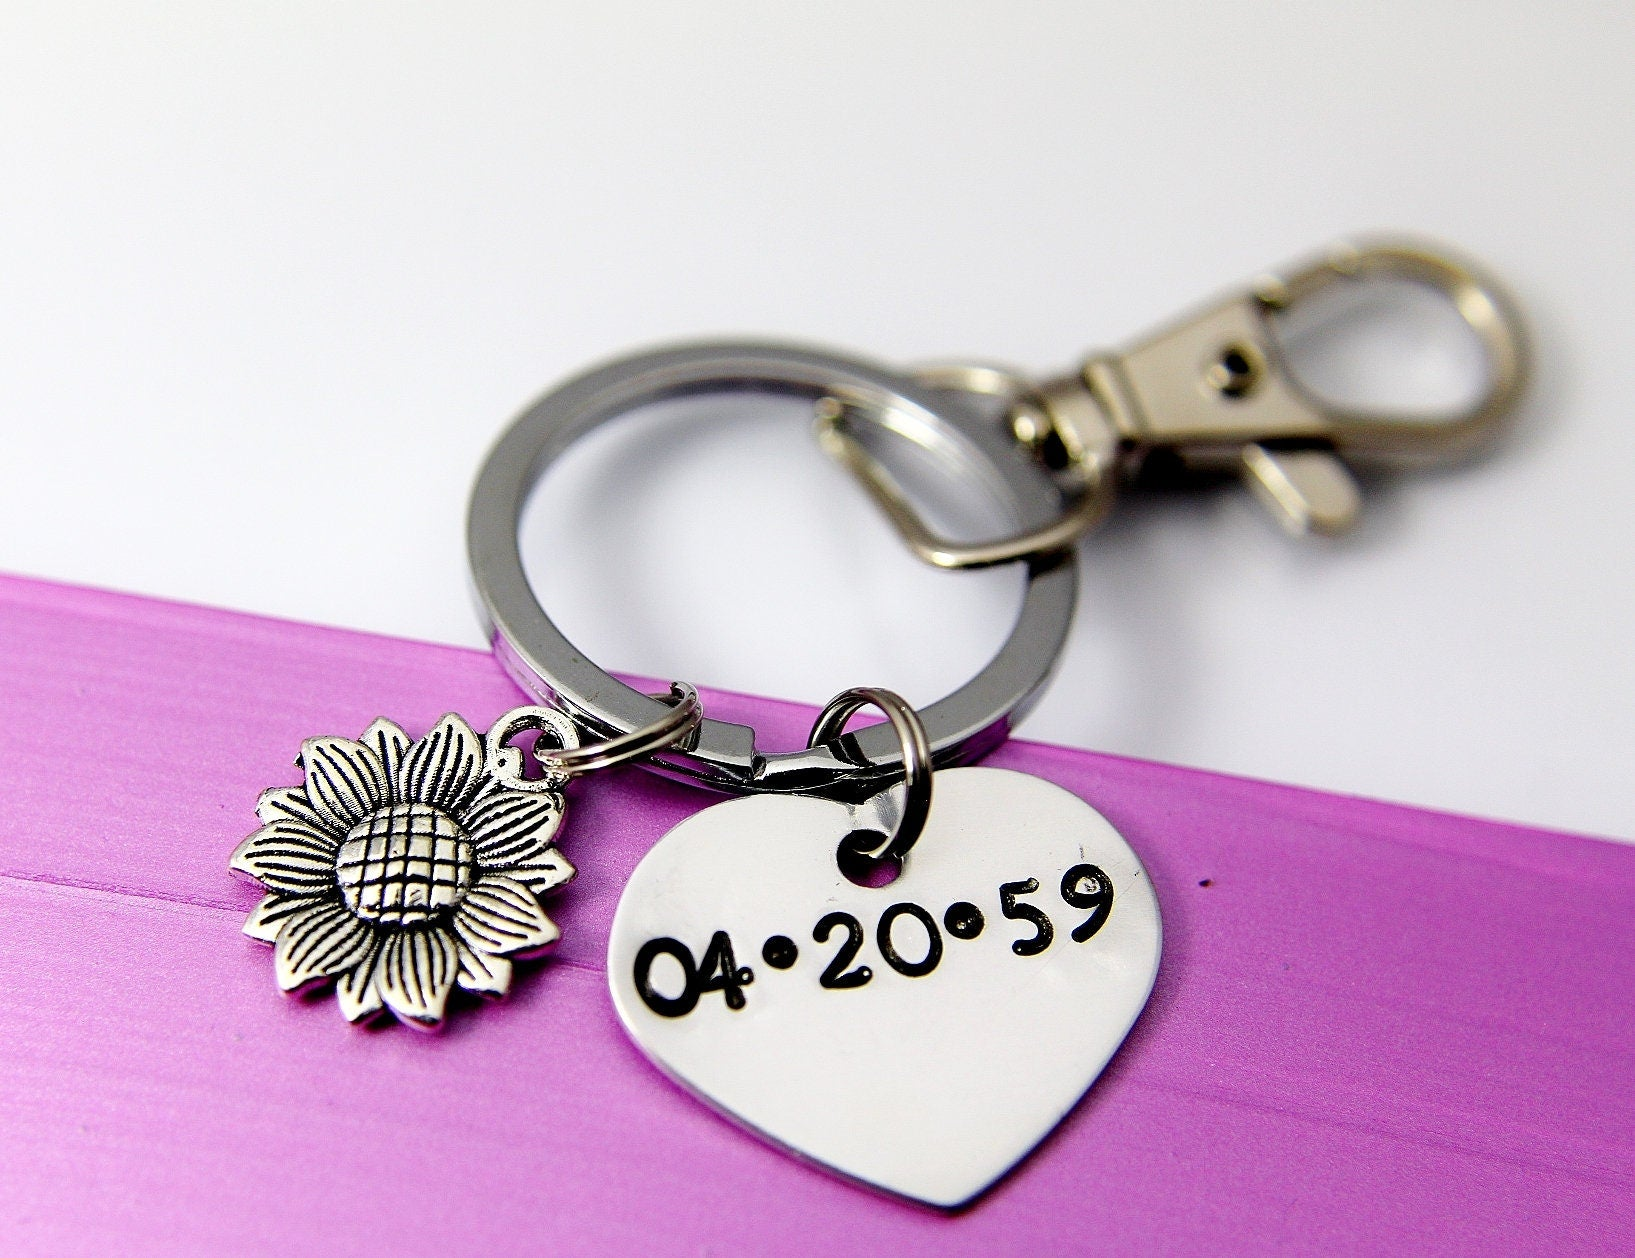 Sunflower Keychain, Anniversary Gift, Date Name Keychain, Hand Stamp Date o Name Heart Charm, Girlfriend Gift, N1341